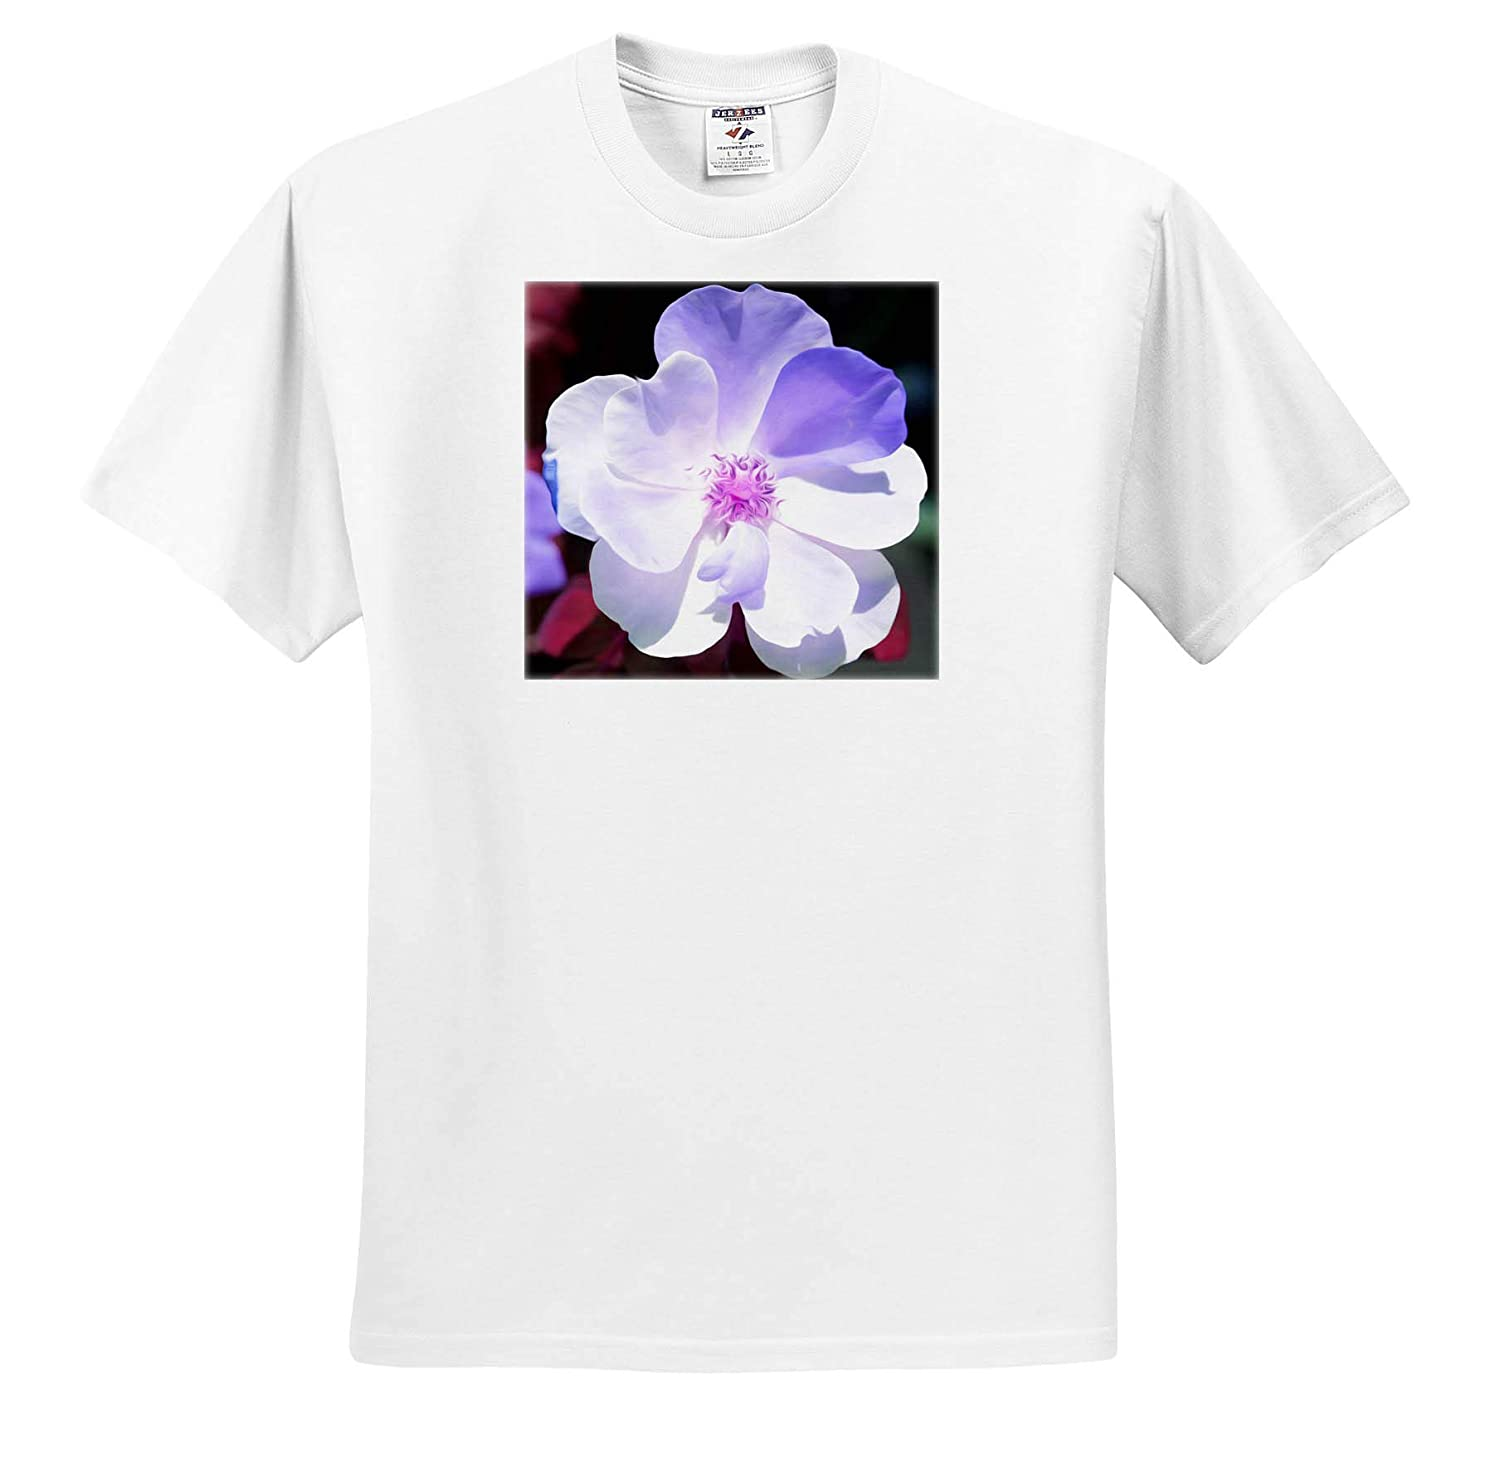 - T-Shirts Flowers Abstract Photo of a Rose Edited in Photoshop with an Oil Paint Filter 3dRose Stamp City